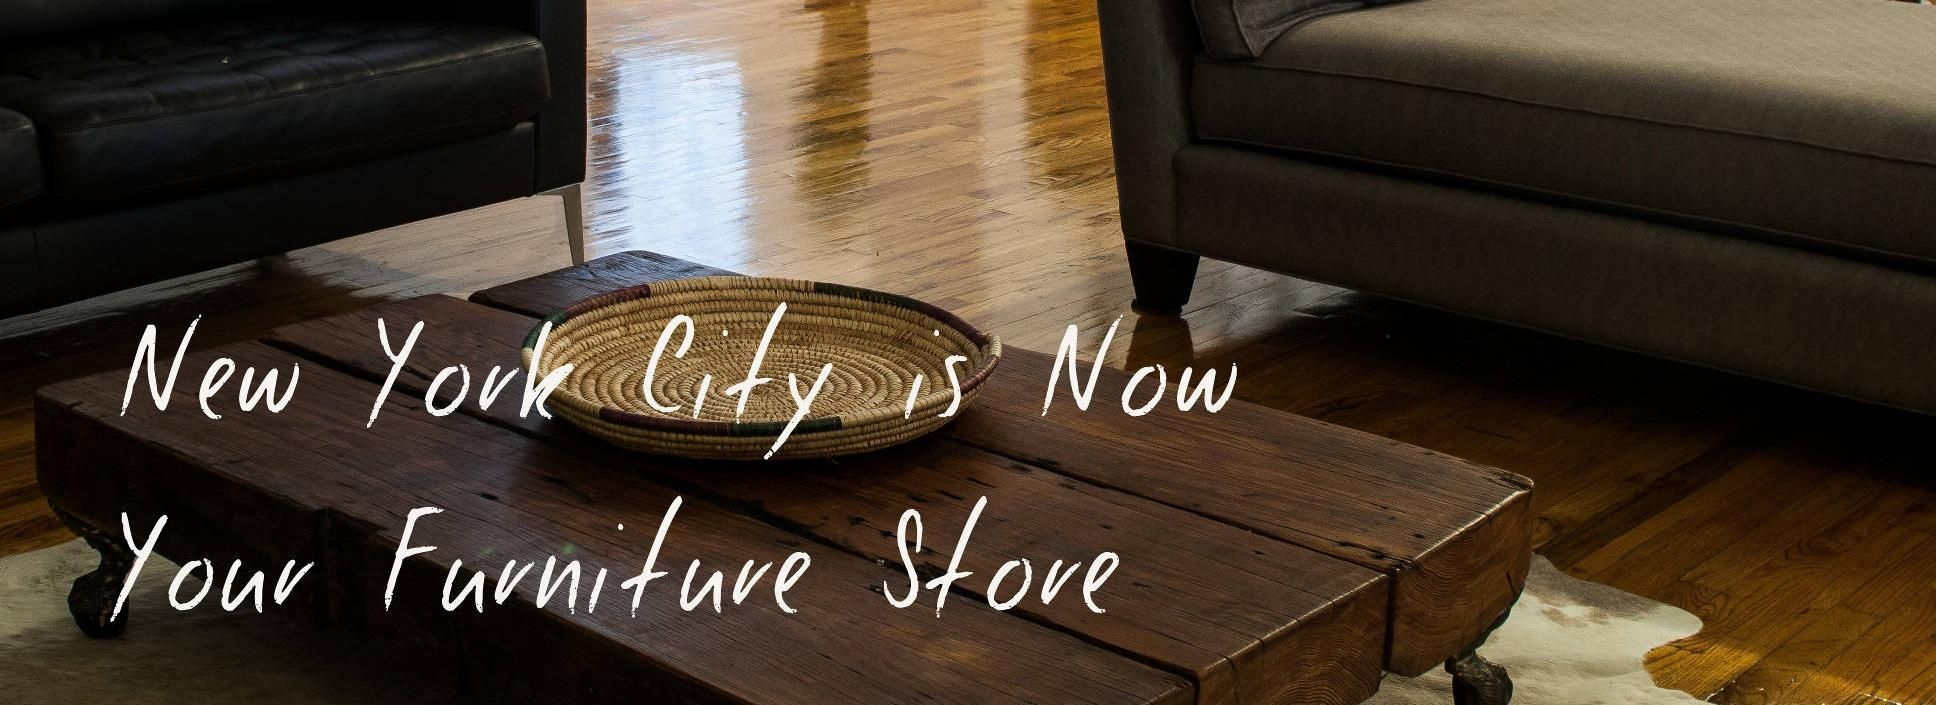 Aptdeco Used Furniture For Sale In New York Used Furniture For Sale Selling Furniture Used Furniture Online